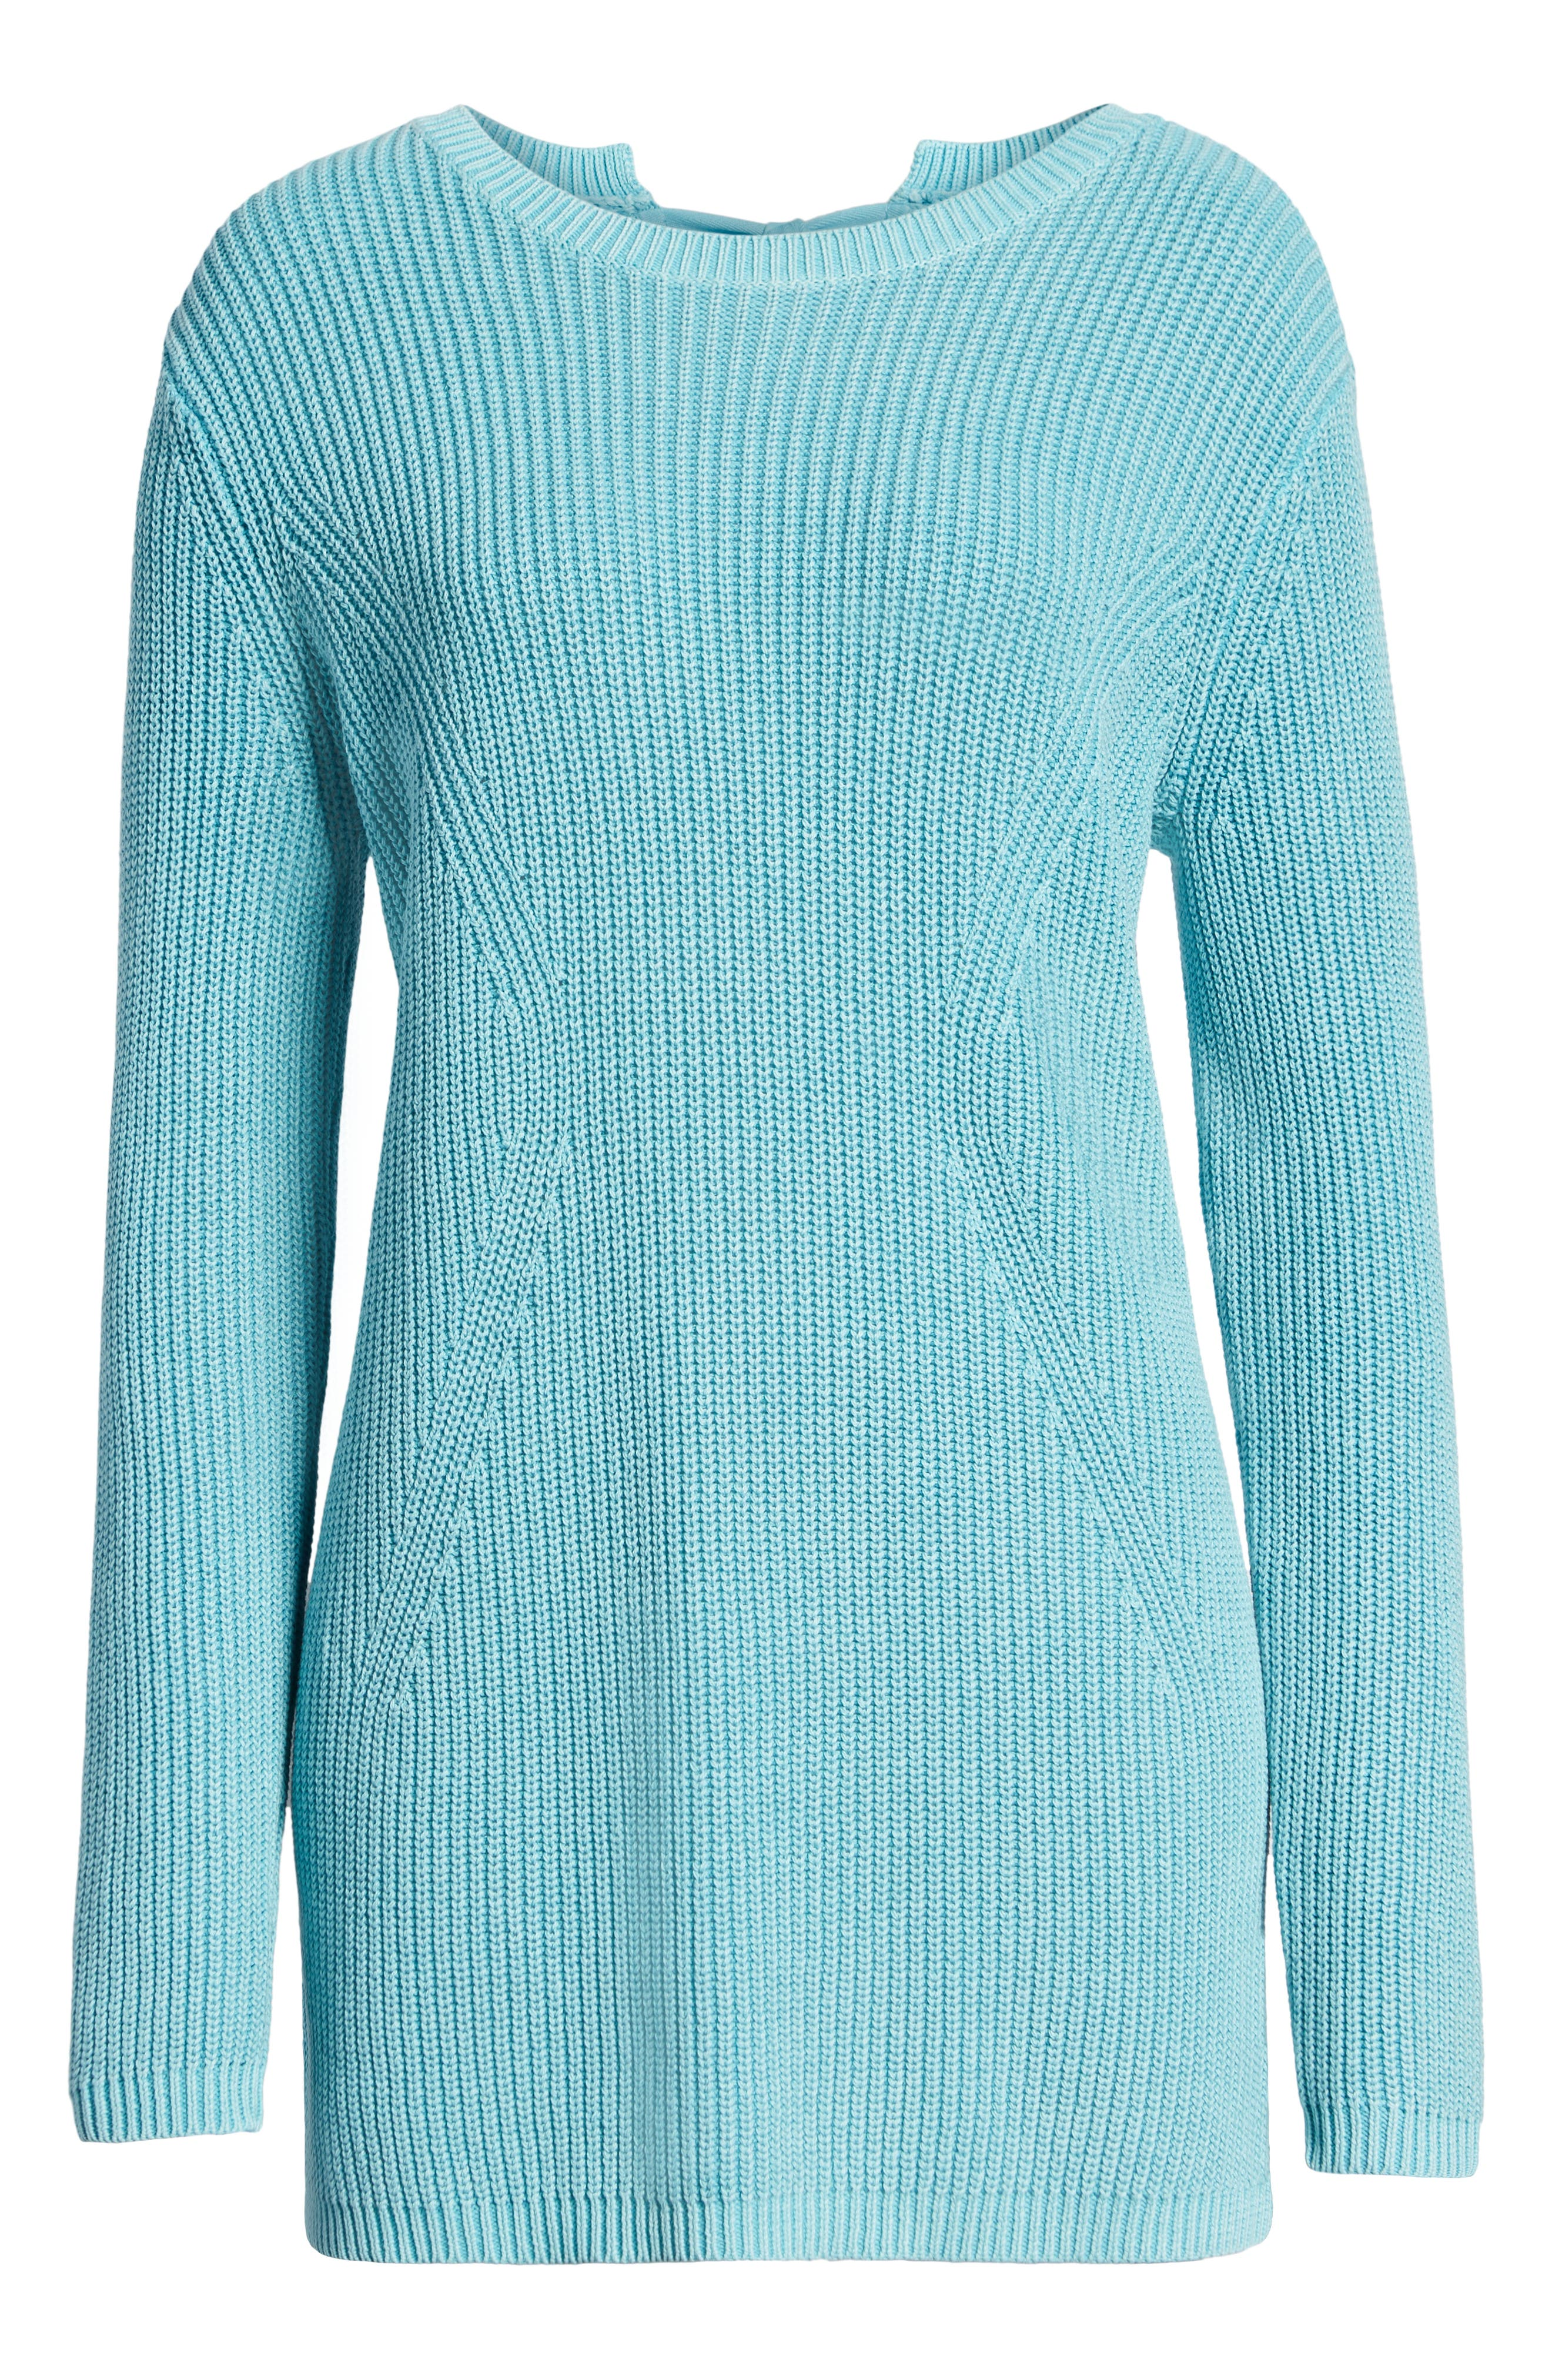 CASLON<SUP>®</SUP>, Tie Back Tunic Sweater, Alternate thumbnail 6, color, BLUE MAUI